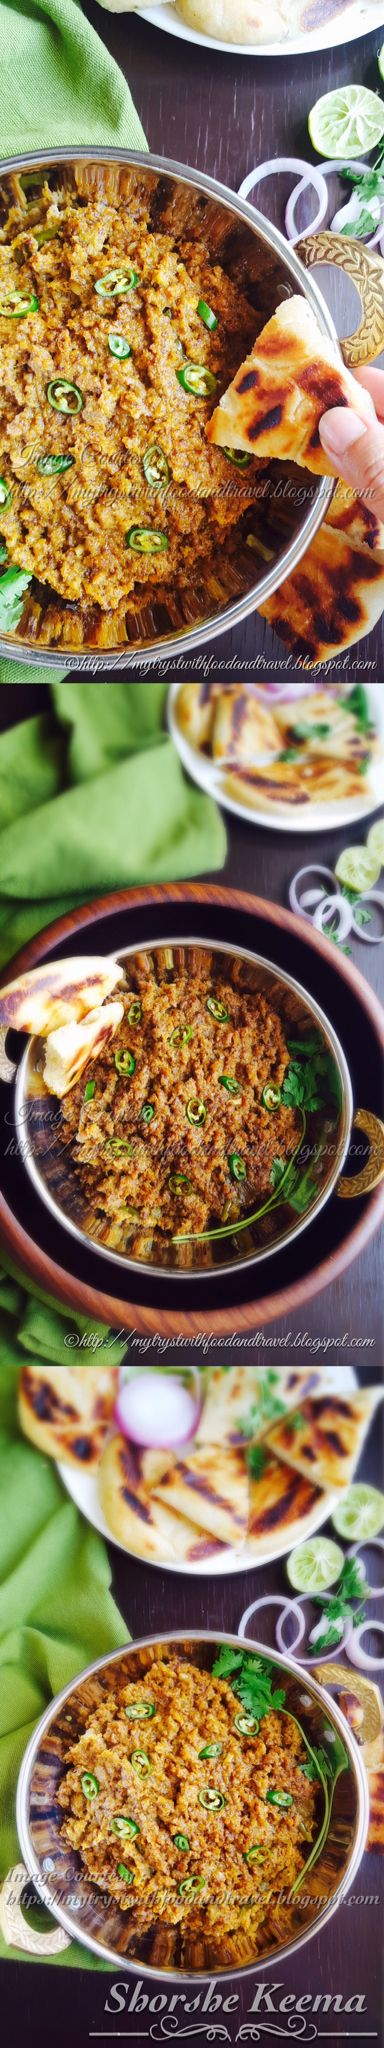 Shorshe Keema / Mutton ( Goat ) Mince in thick mustard sauce ~  Recipe link --> http://mytrystwithfoodandtravel.blogspot.ae/2016/07/shorshe-keema-recipe-mutton-goat-mince.html  Dear Friends, sharing with you an absolutely nouvelle, totally unique, a dish which I would love to serve during Eid. In other words this is a very festive dish and true blue Bengali dish. Shorshe Keema which is basically Mutton or Goat mince cooked in a mustard and coconut sauce, simmered till all the liquid…